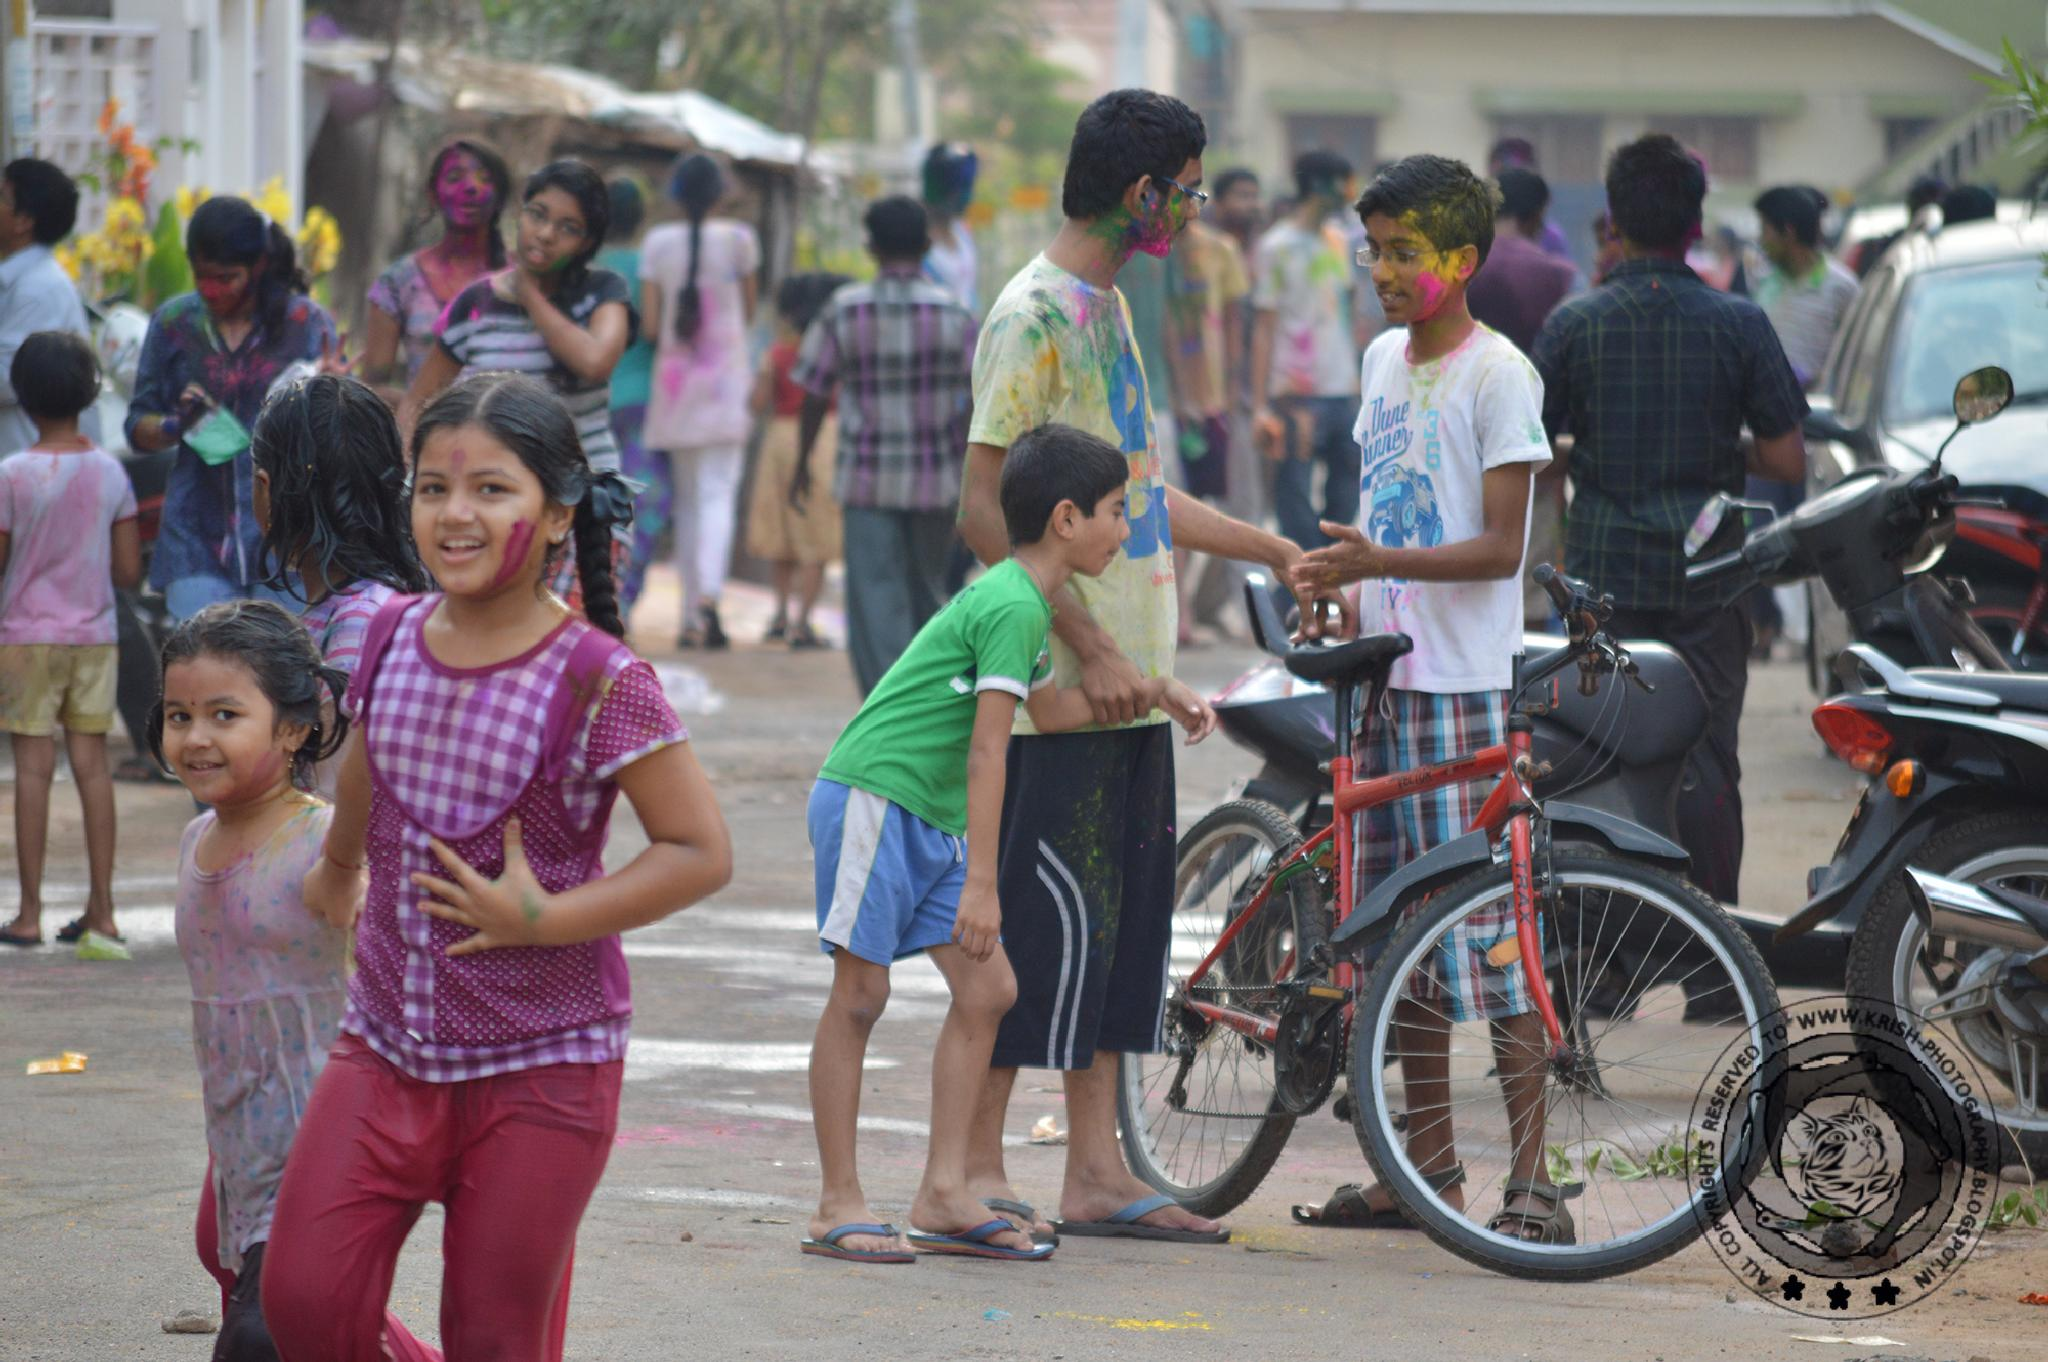 Celebrations with colours by krishna Mohan